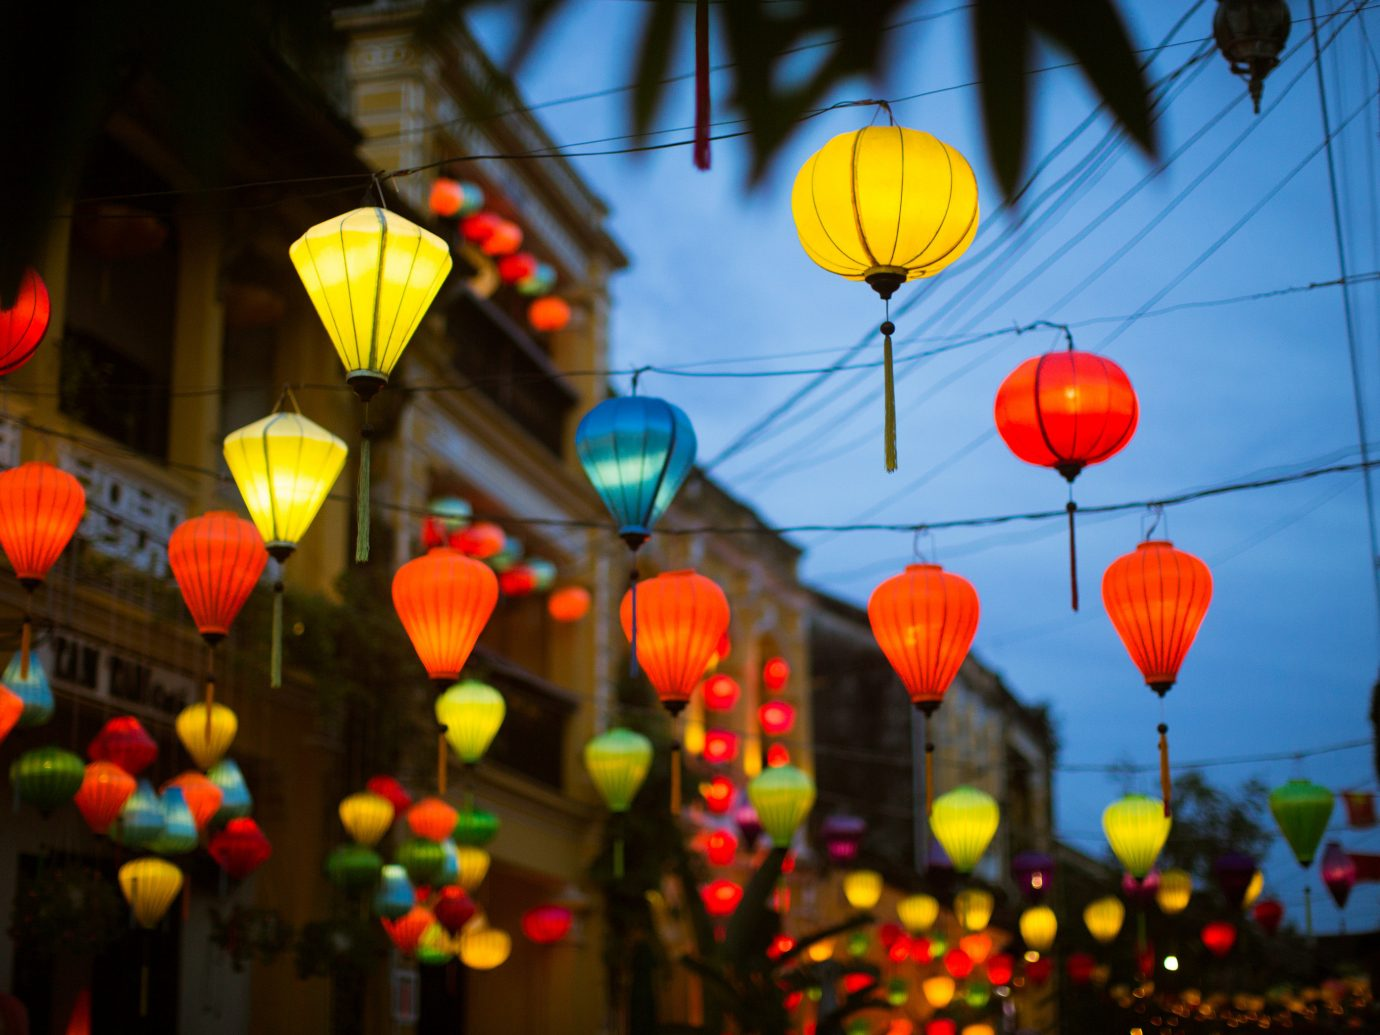 color red crowd flower light night toy balloon lighting festival mid autumn festival colorful several